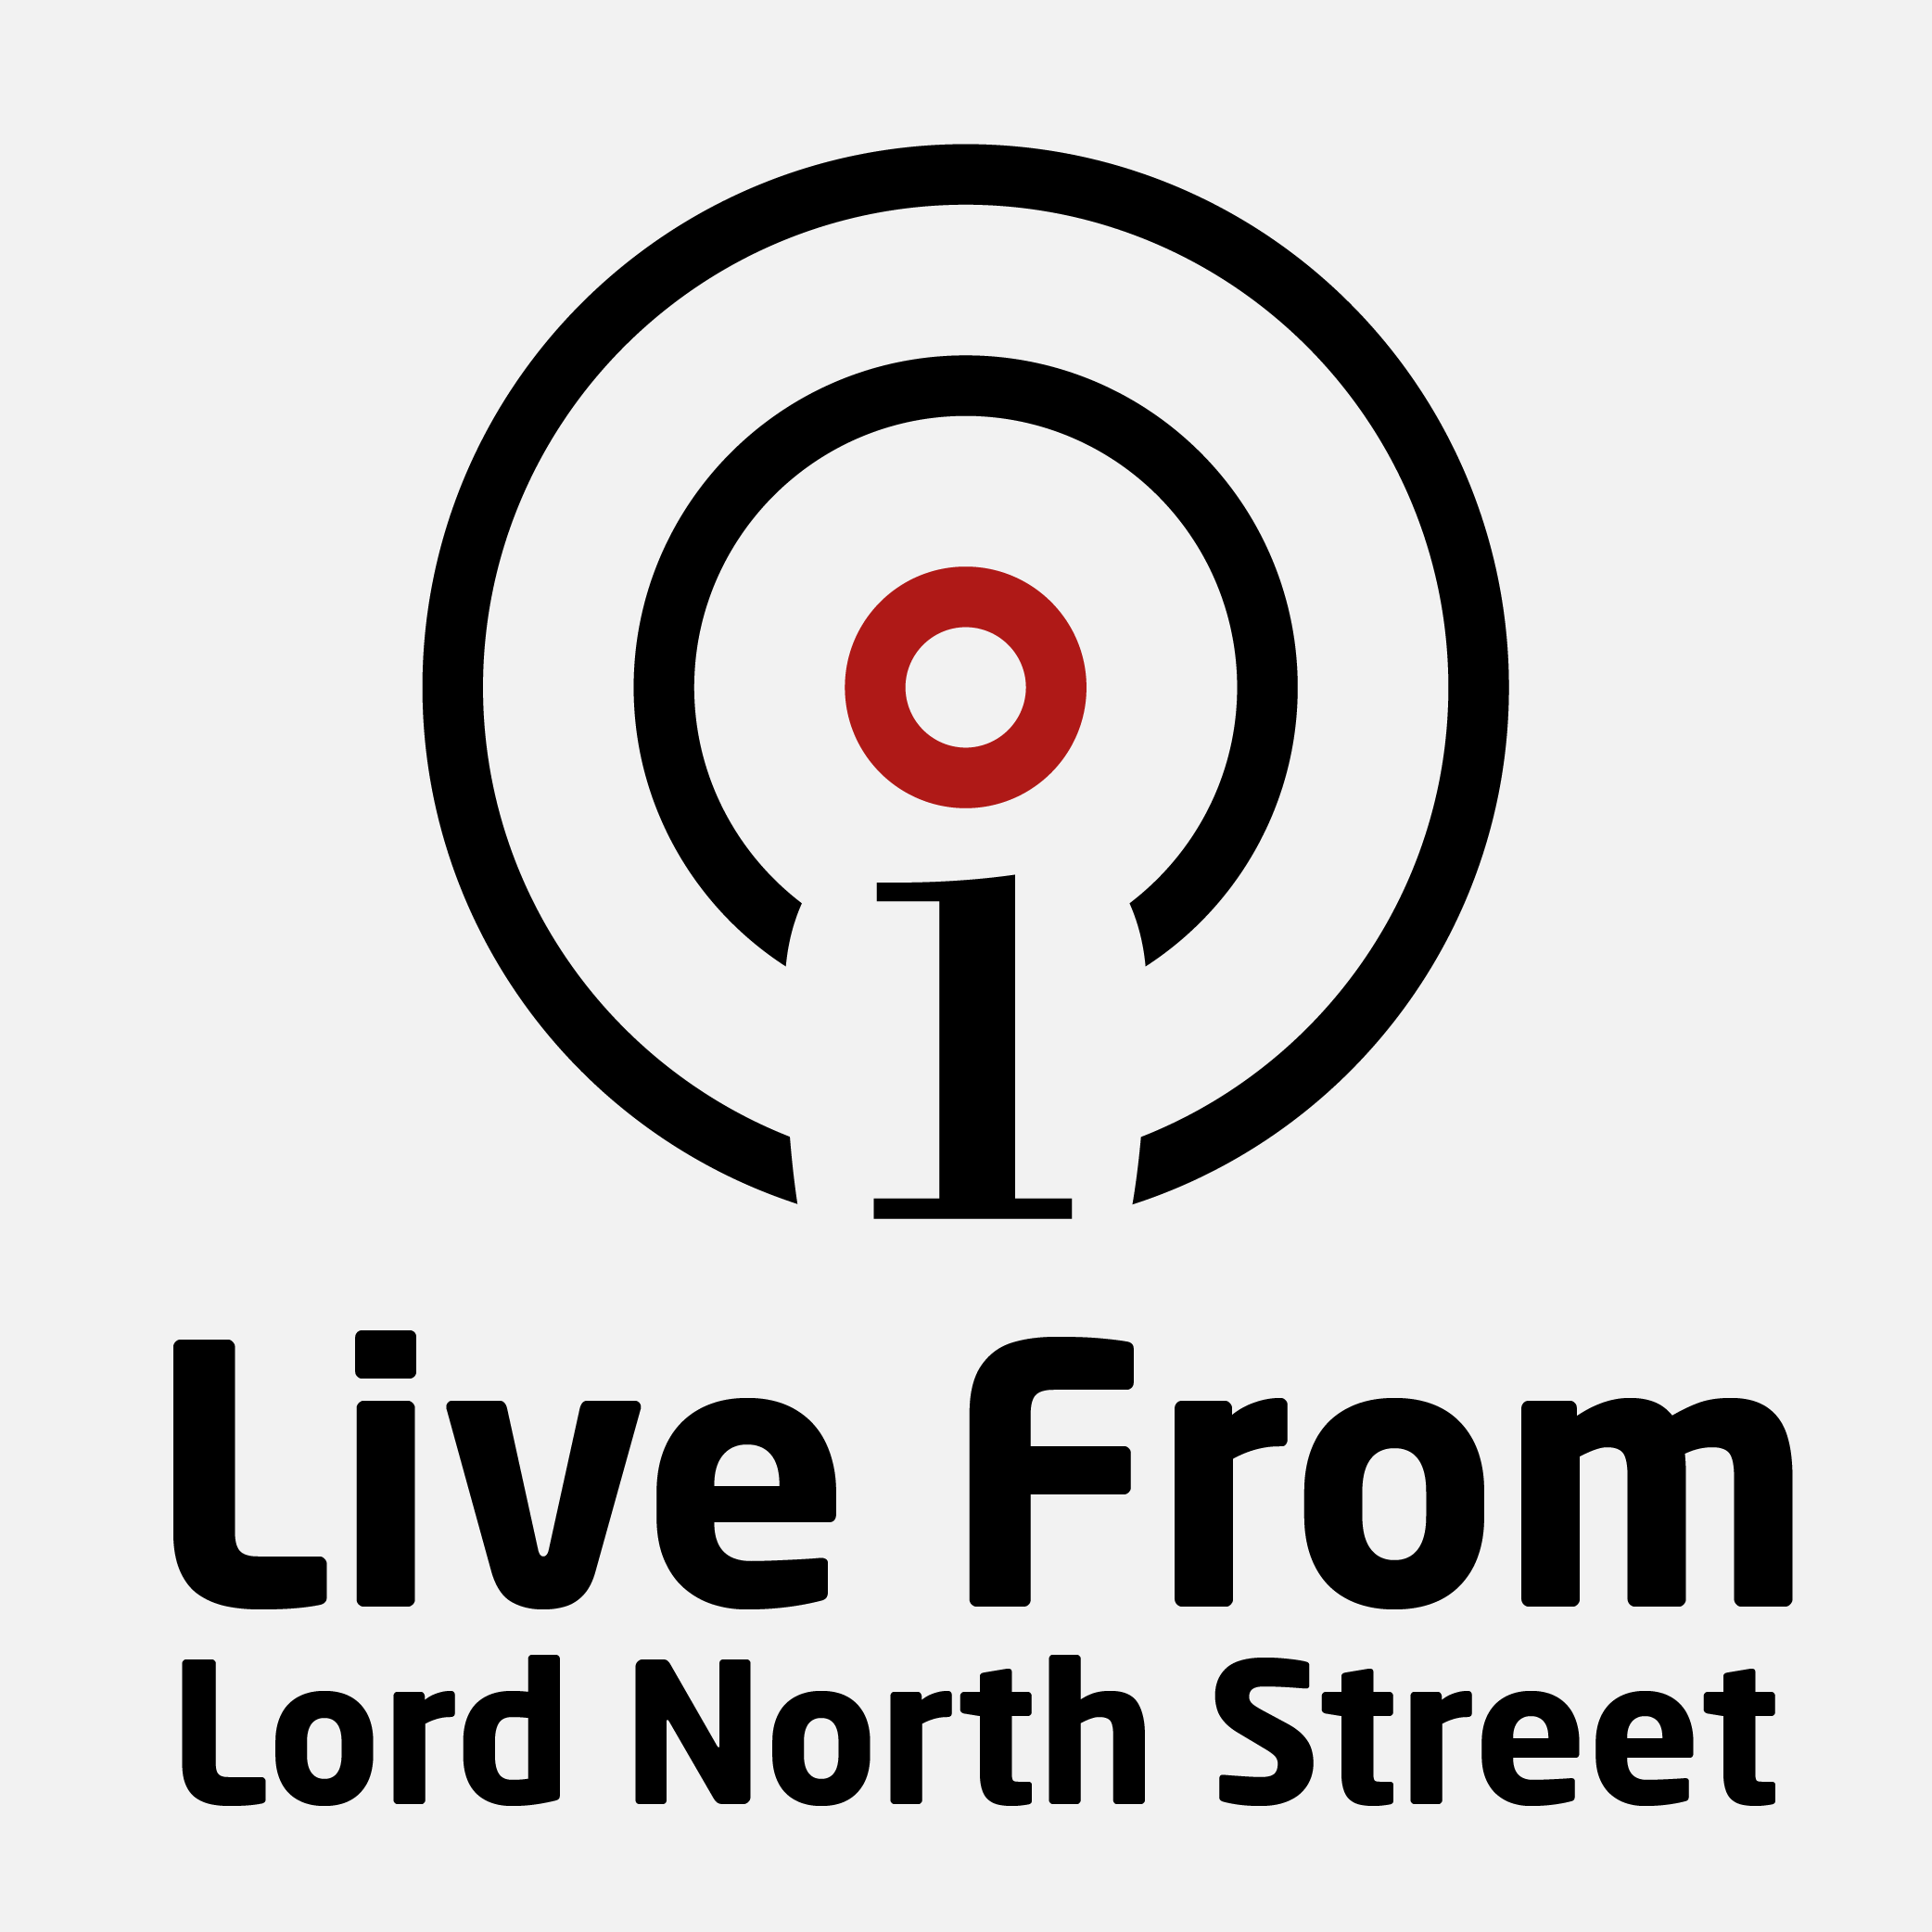 Live from Lord North Steet